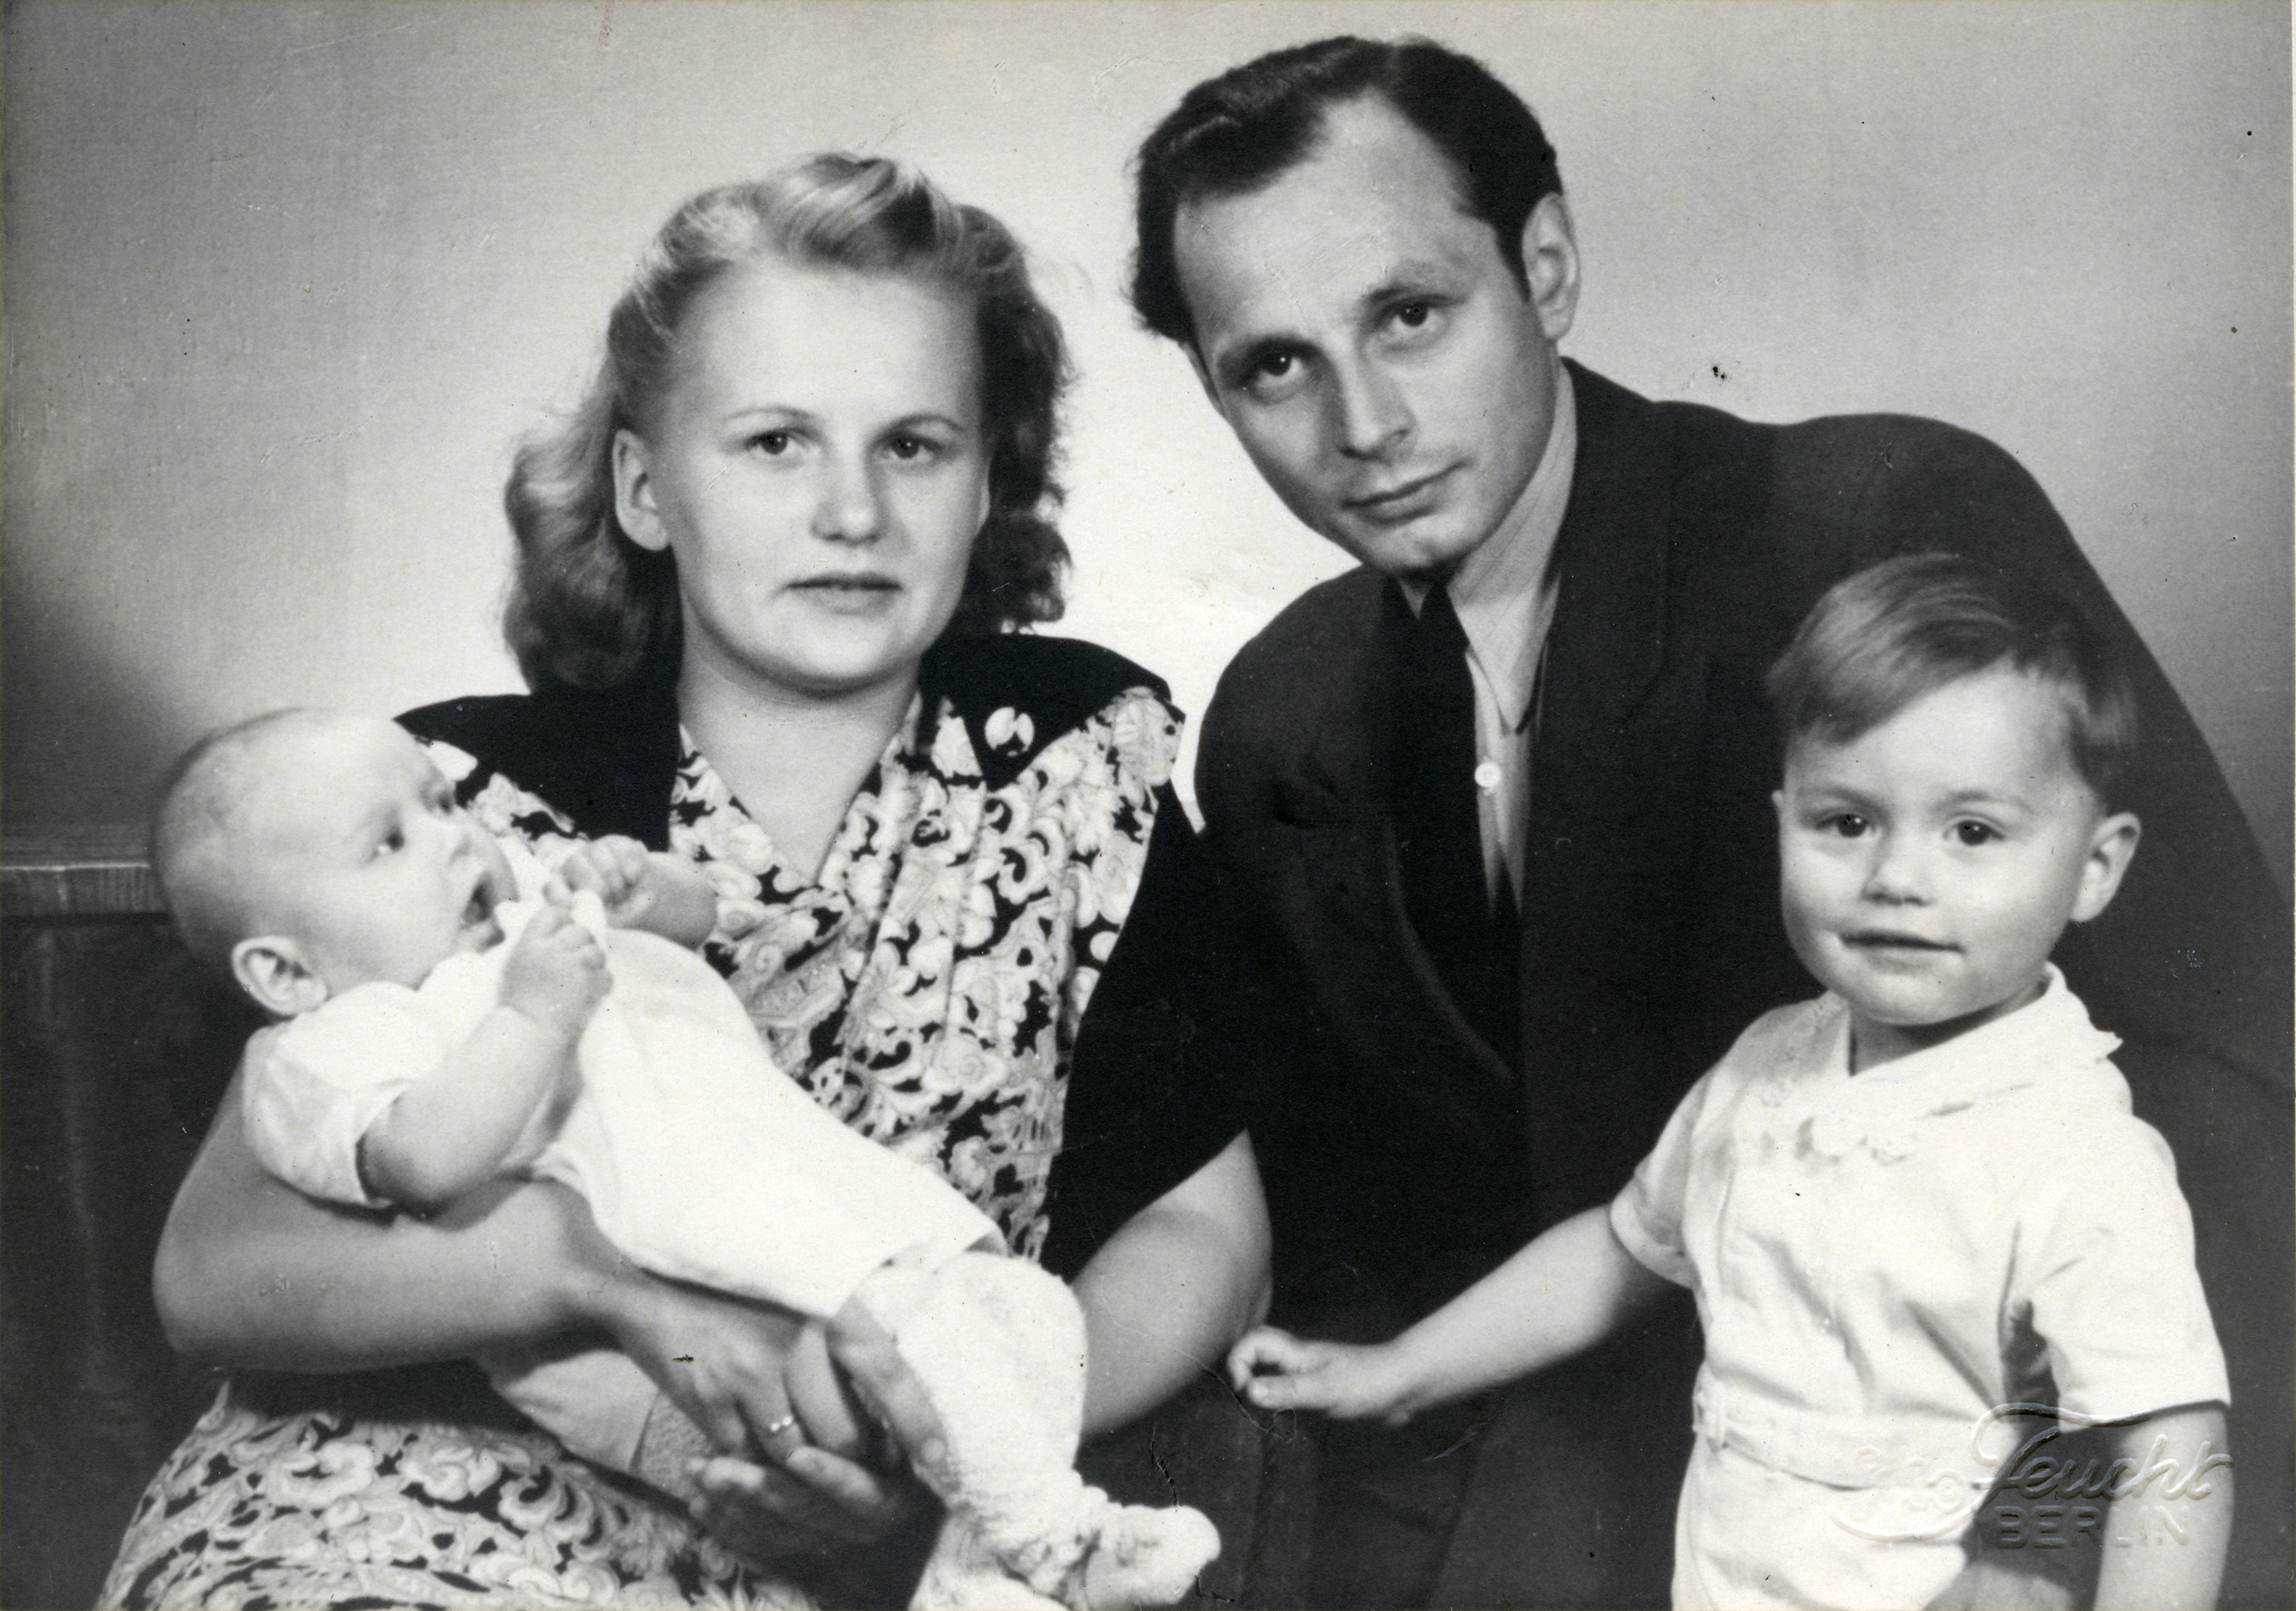 Portrait of the Friedlander family.  Pictured are Martin and Margot Friedlander, with their children Brigitta and Norbert. (right).